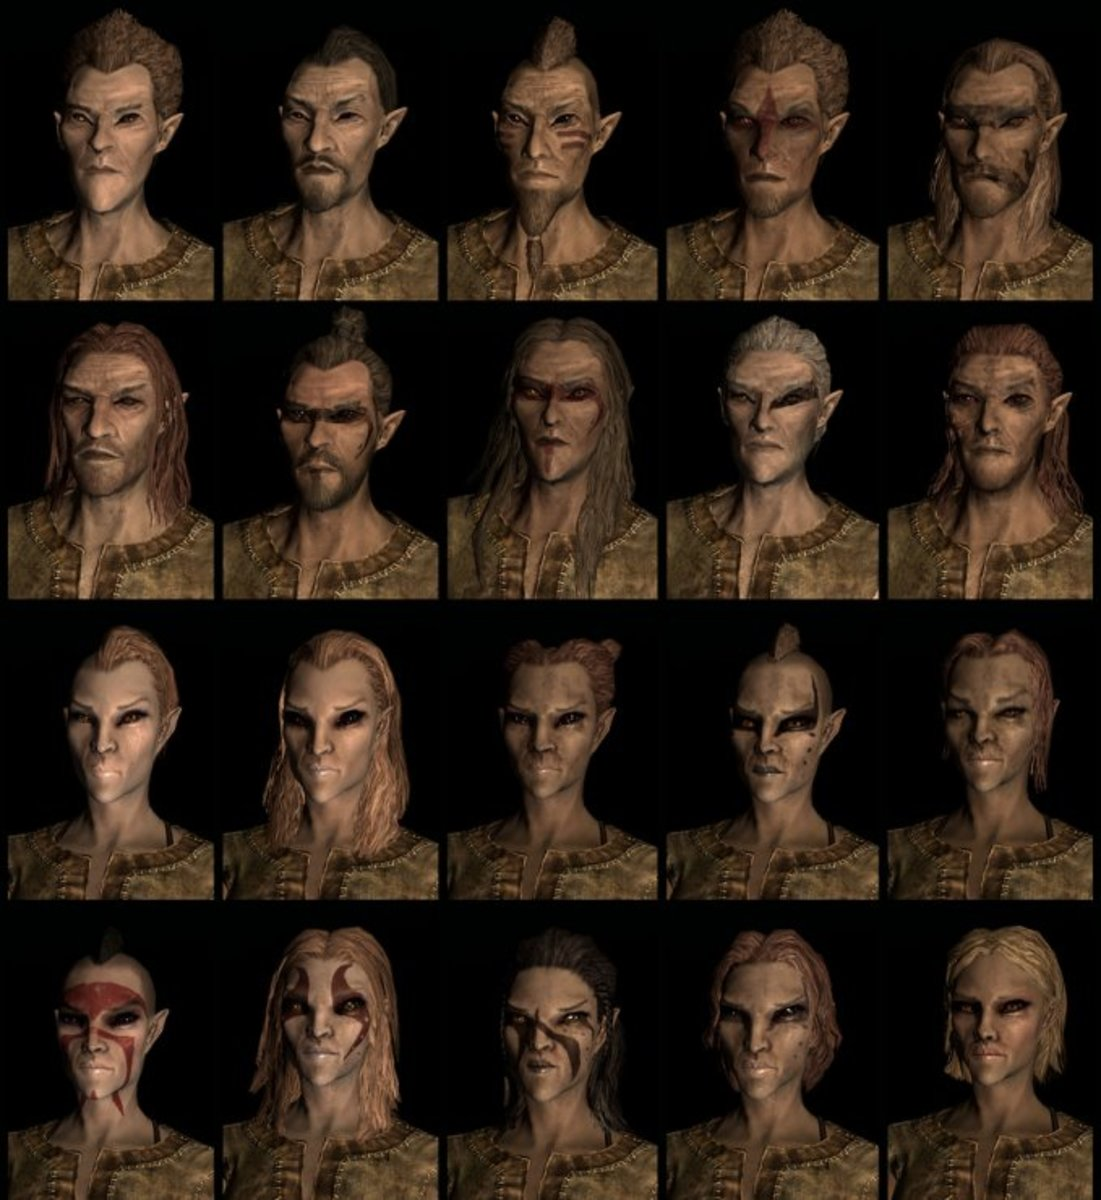 Bosmer Race In Skyrim. Click to view full size.